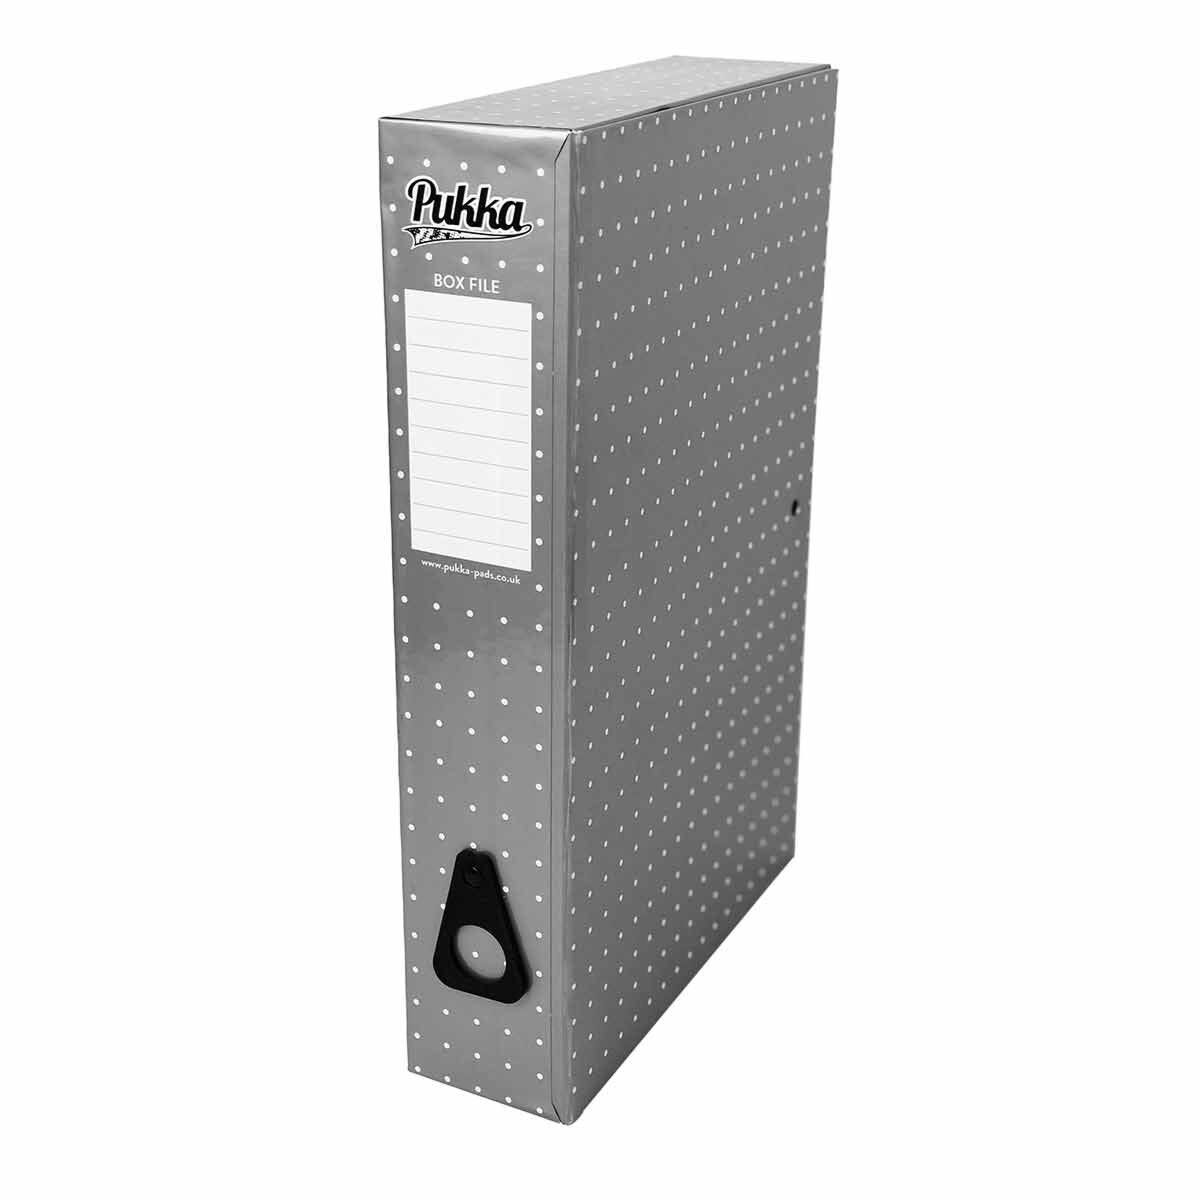 Pukka Metallic Foolscap Box File Metallic Silver